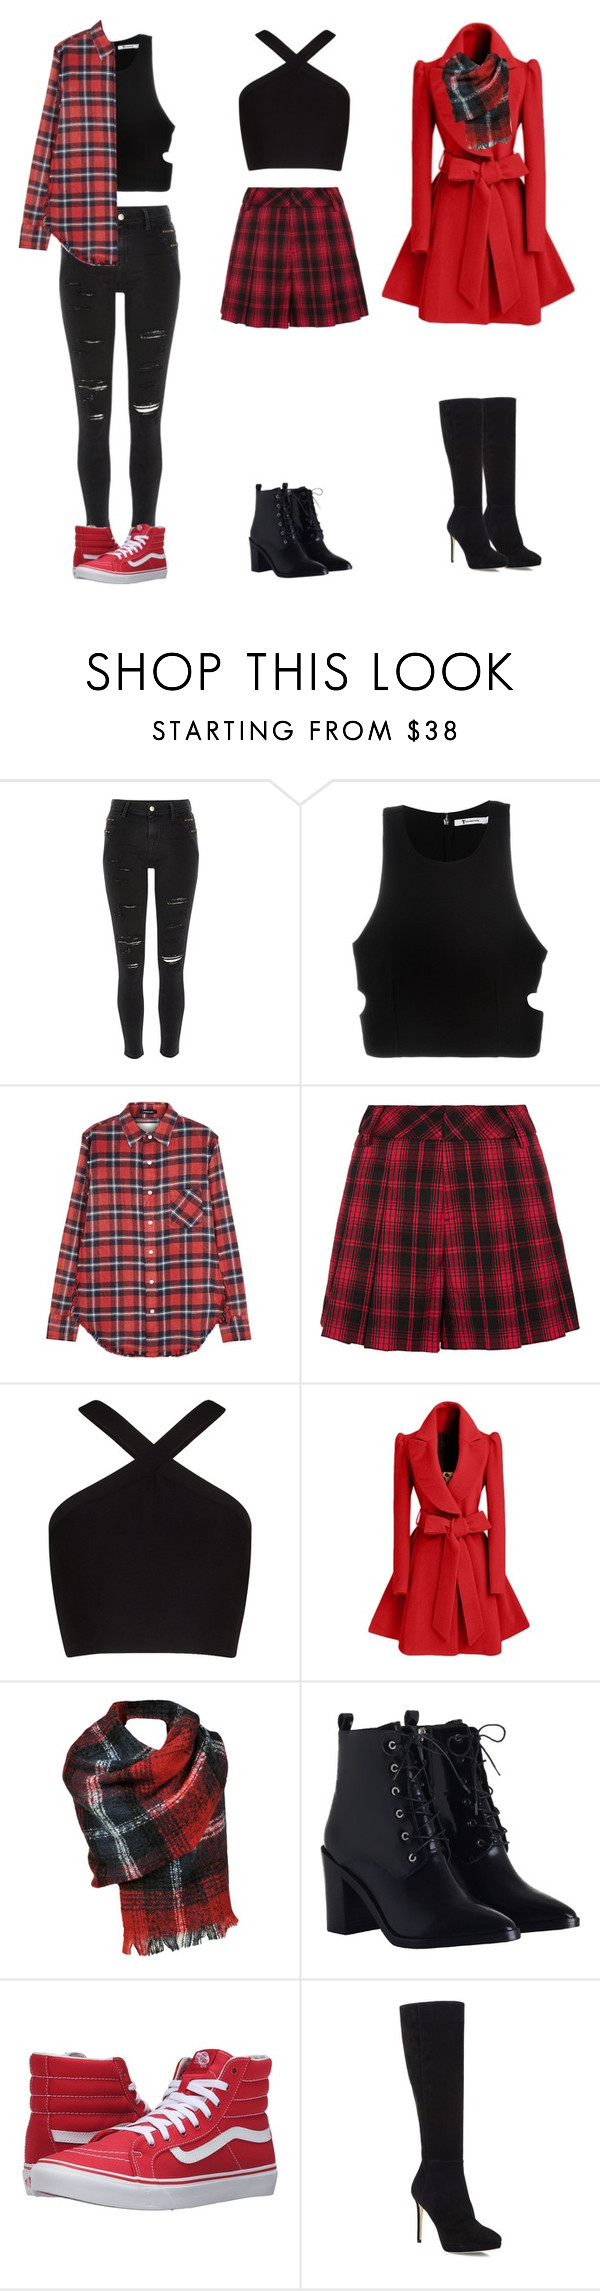 """3 way plaid"" by pandagirl1106 ❤ liked on Polyvore featuring River Island, T By Alexander Wang, R13, Alice + Olivia, BCBGMAXAZRIA, Zimmermann, Vans and Jimmy Choo"